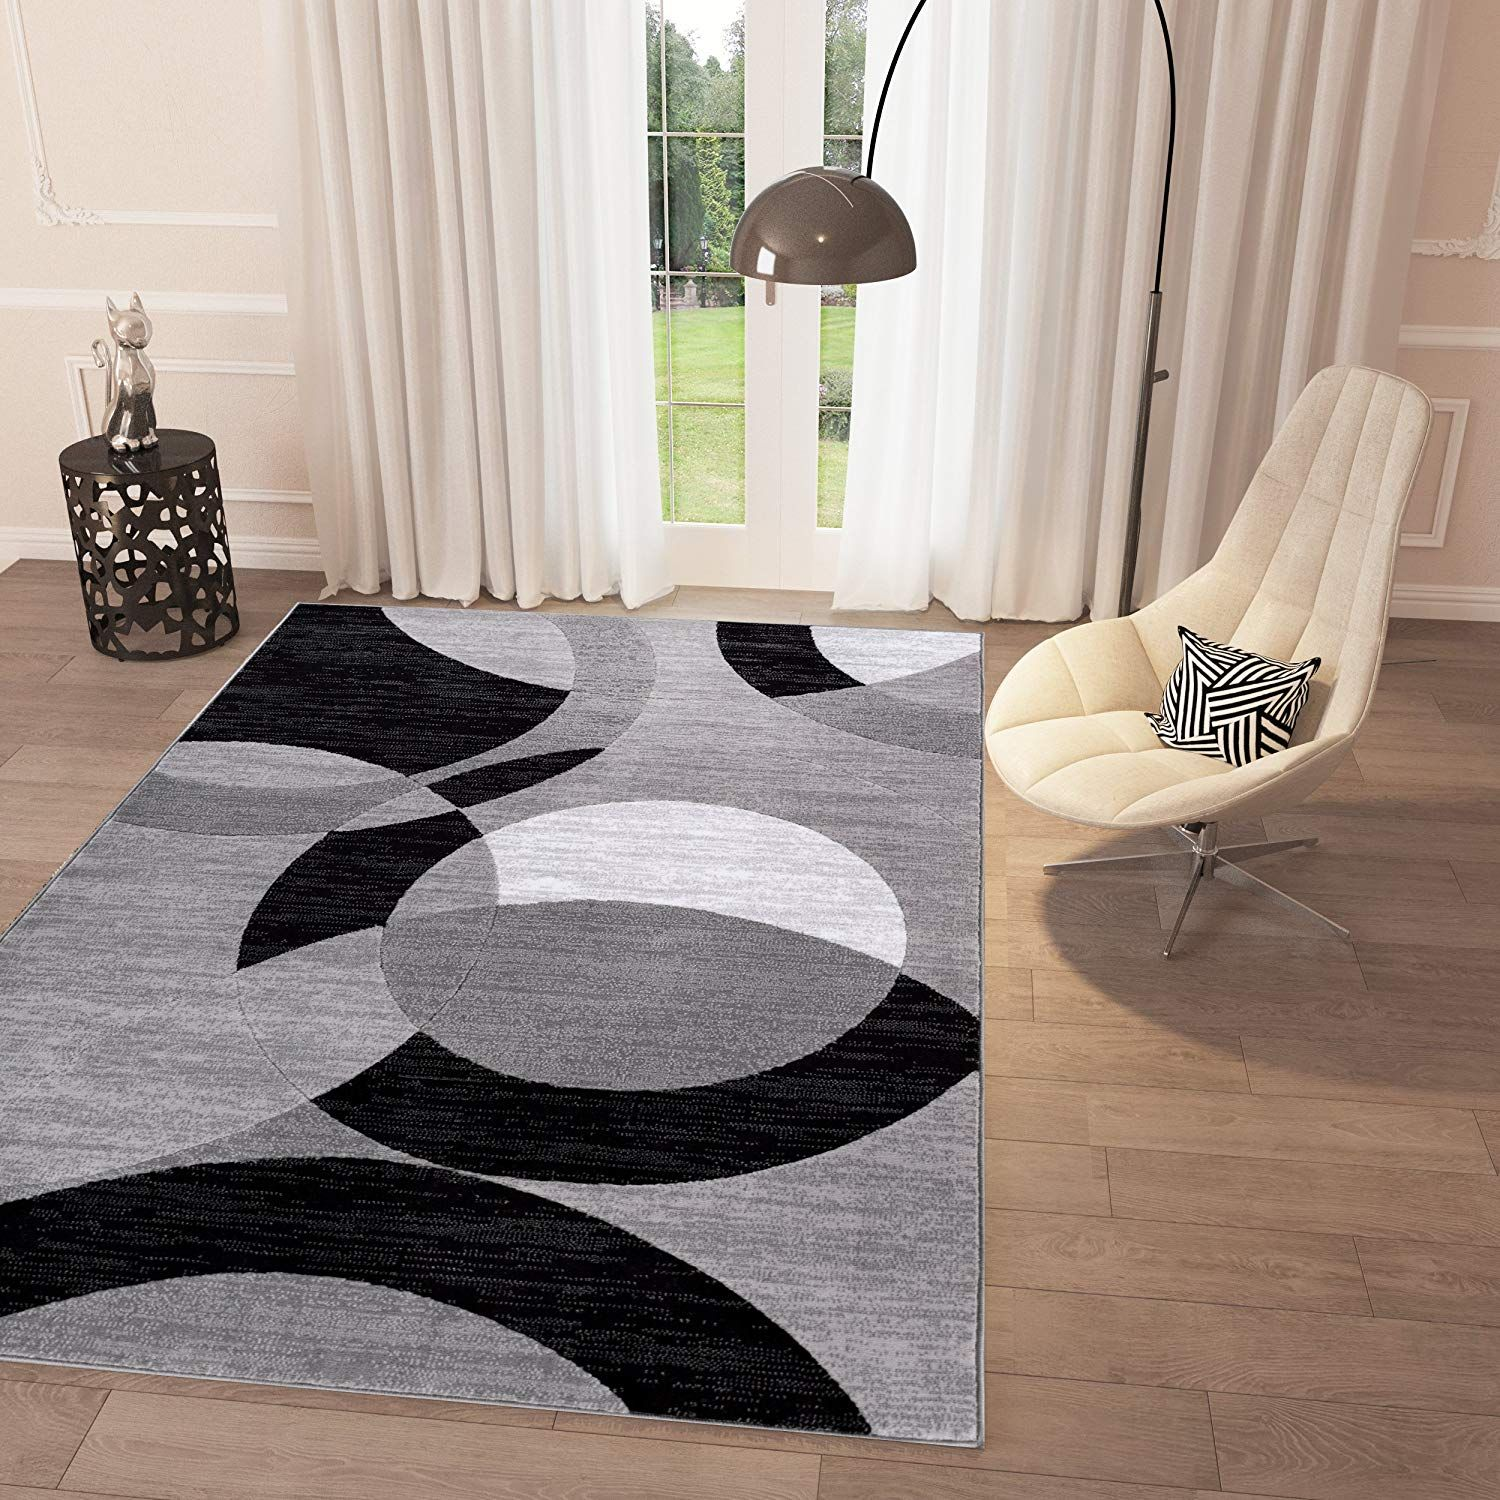 Black And White Geometric Grey Circles Area Rug 2 X 7 3 Runner Casual Modern For Dining Living Room Bedroom Easy Clean Carpet